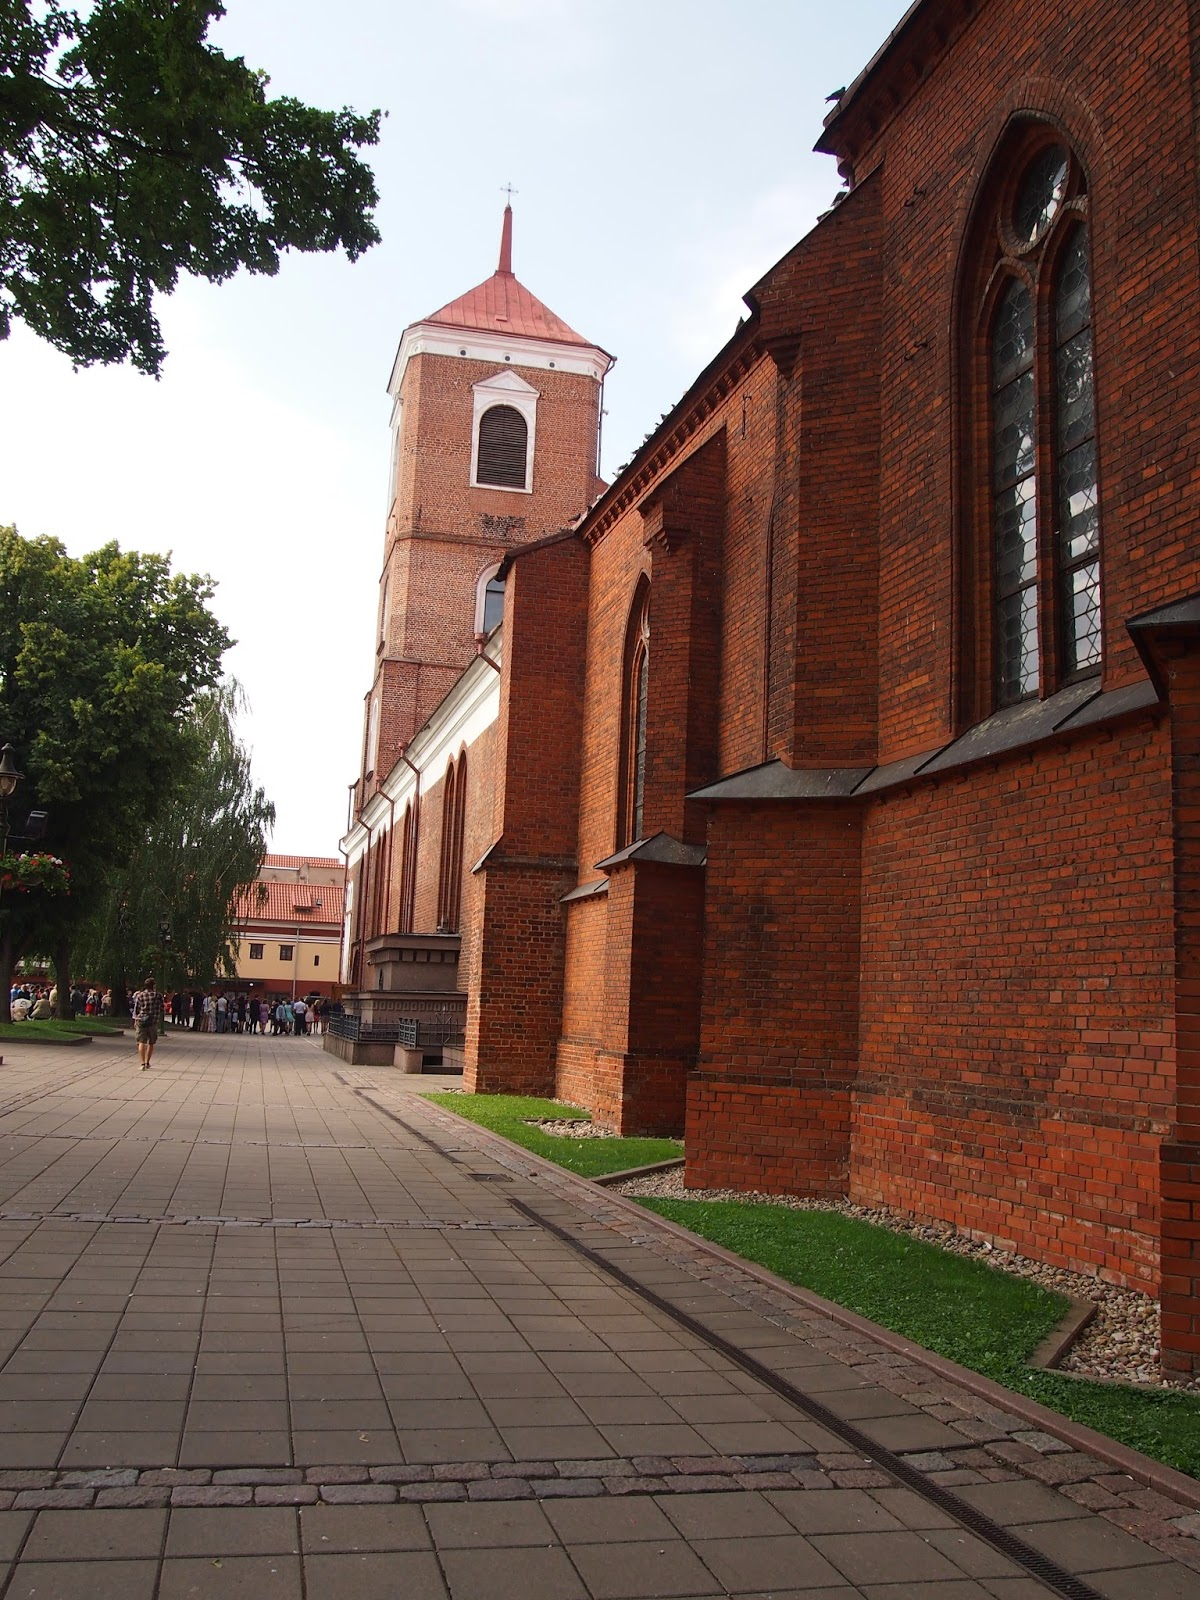 the large brick exterior of the Cathedral of Sts. Peter and Paul in Kaunas Old Town